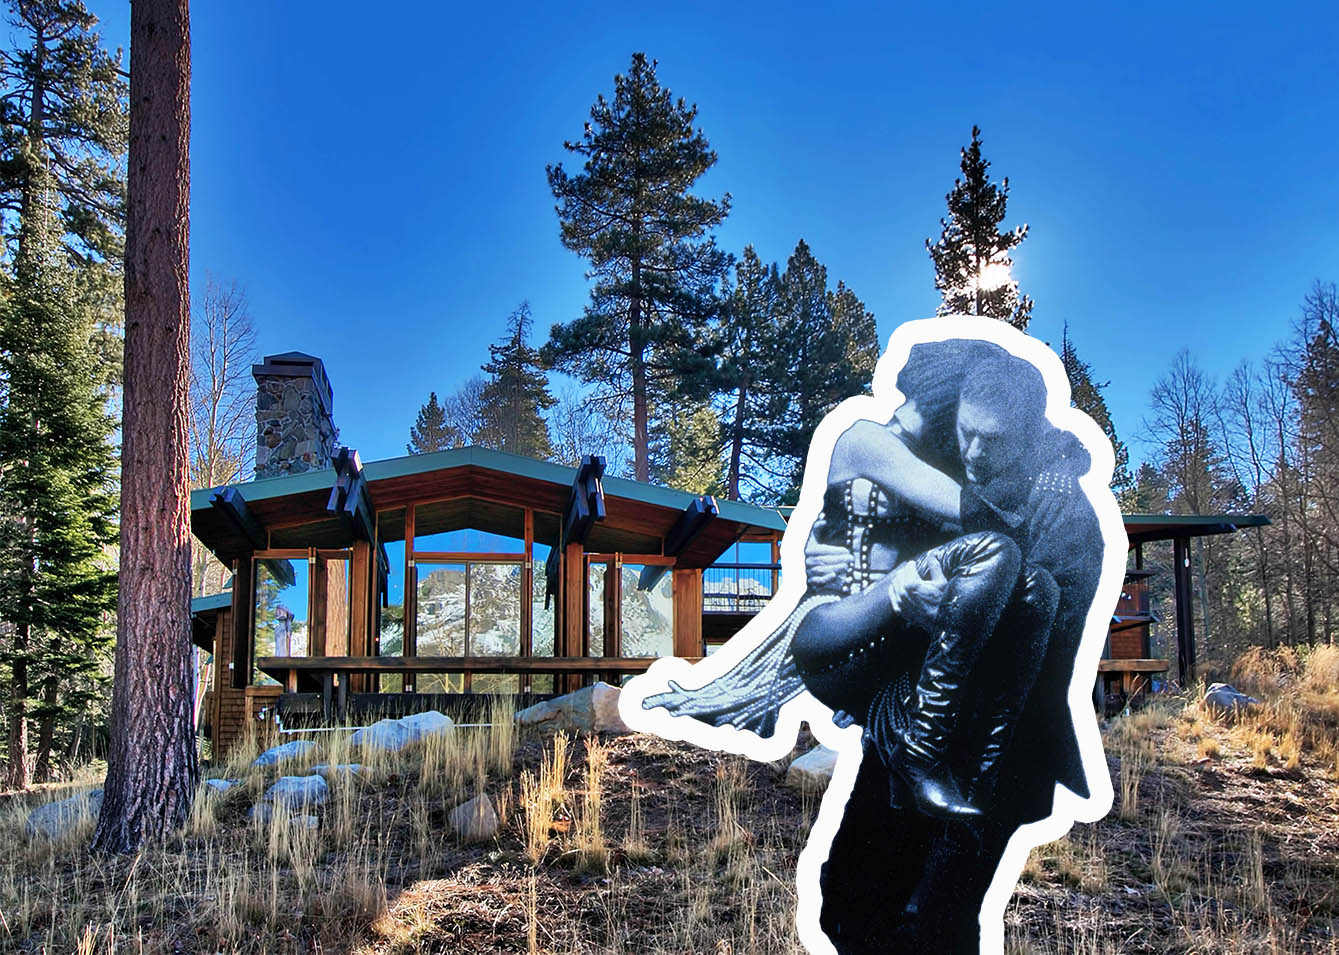 PIC BY 2VIEW MEDIA / CATERS NEWS - (PICTURED: The outside of the Fallen Leaf Lake House) - The stunning house used in Whitney Houstons classic The Bodyguard is on sale for a cool m (5.2m). Featured in the romantic thriller starring the late singer alongside Kevin Costner, the serene Fallen Leaf Lake home is believed to have been the real heartthrob of the 1992 film. Decked floor to ceiling in wood, the five bedroom retreat in California boasts lake views in EVERY room. Although it will set the buyer back a hefty sum they will also have private access to a 76ft pier, three acres of forest and a three-car garage. SEE CATERS COPY